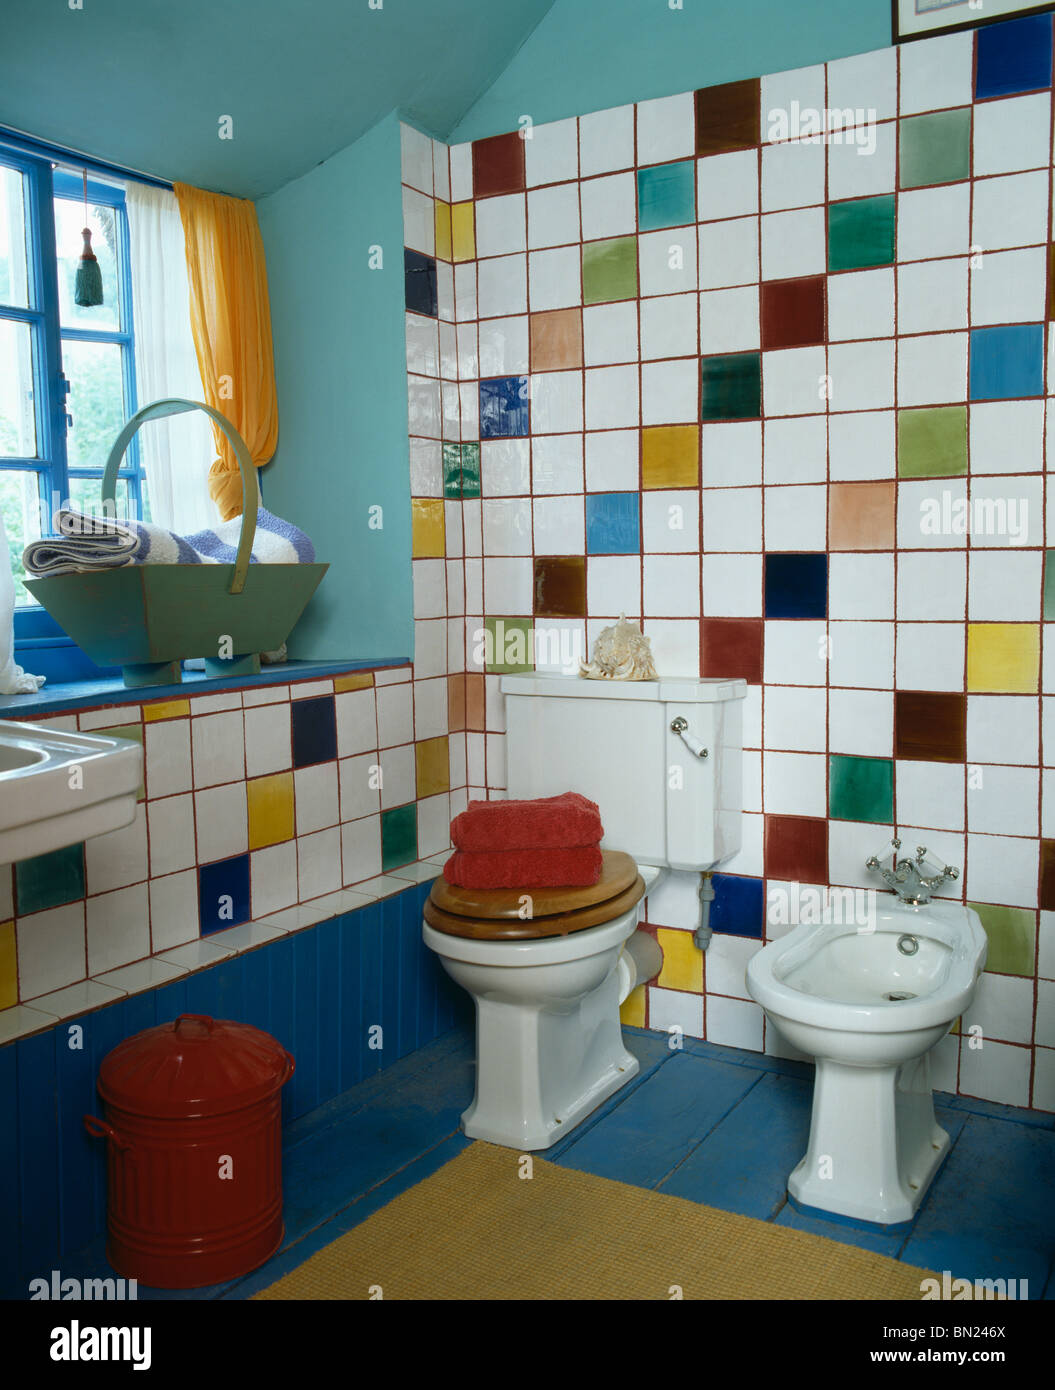 Multi-colored wall tiles above bidet and toilet in pale turquoise ...